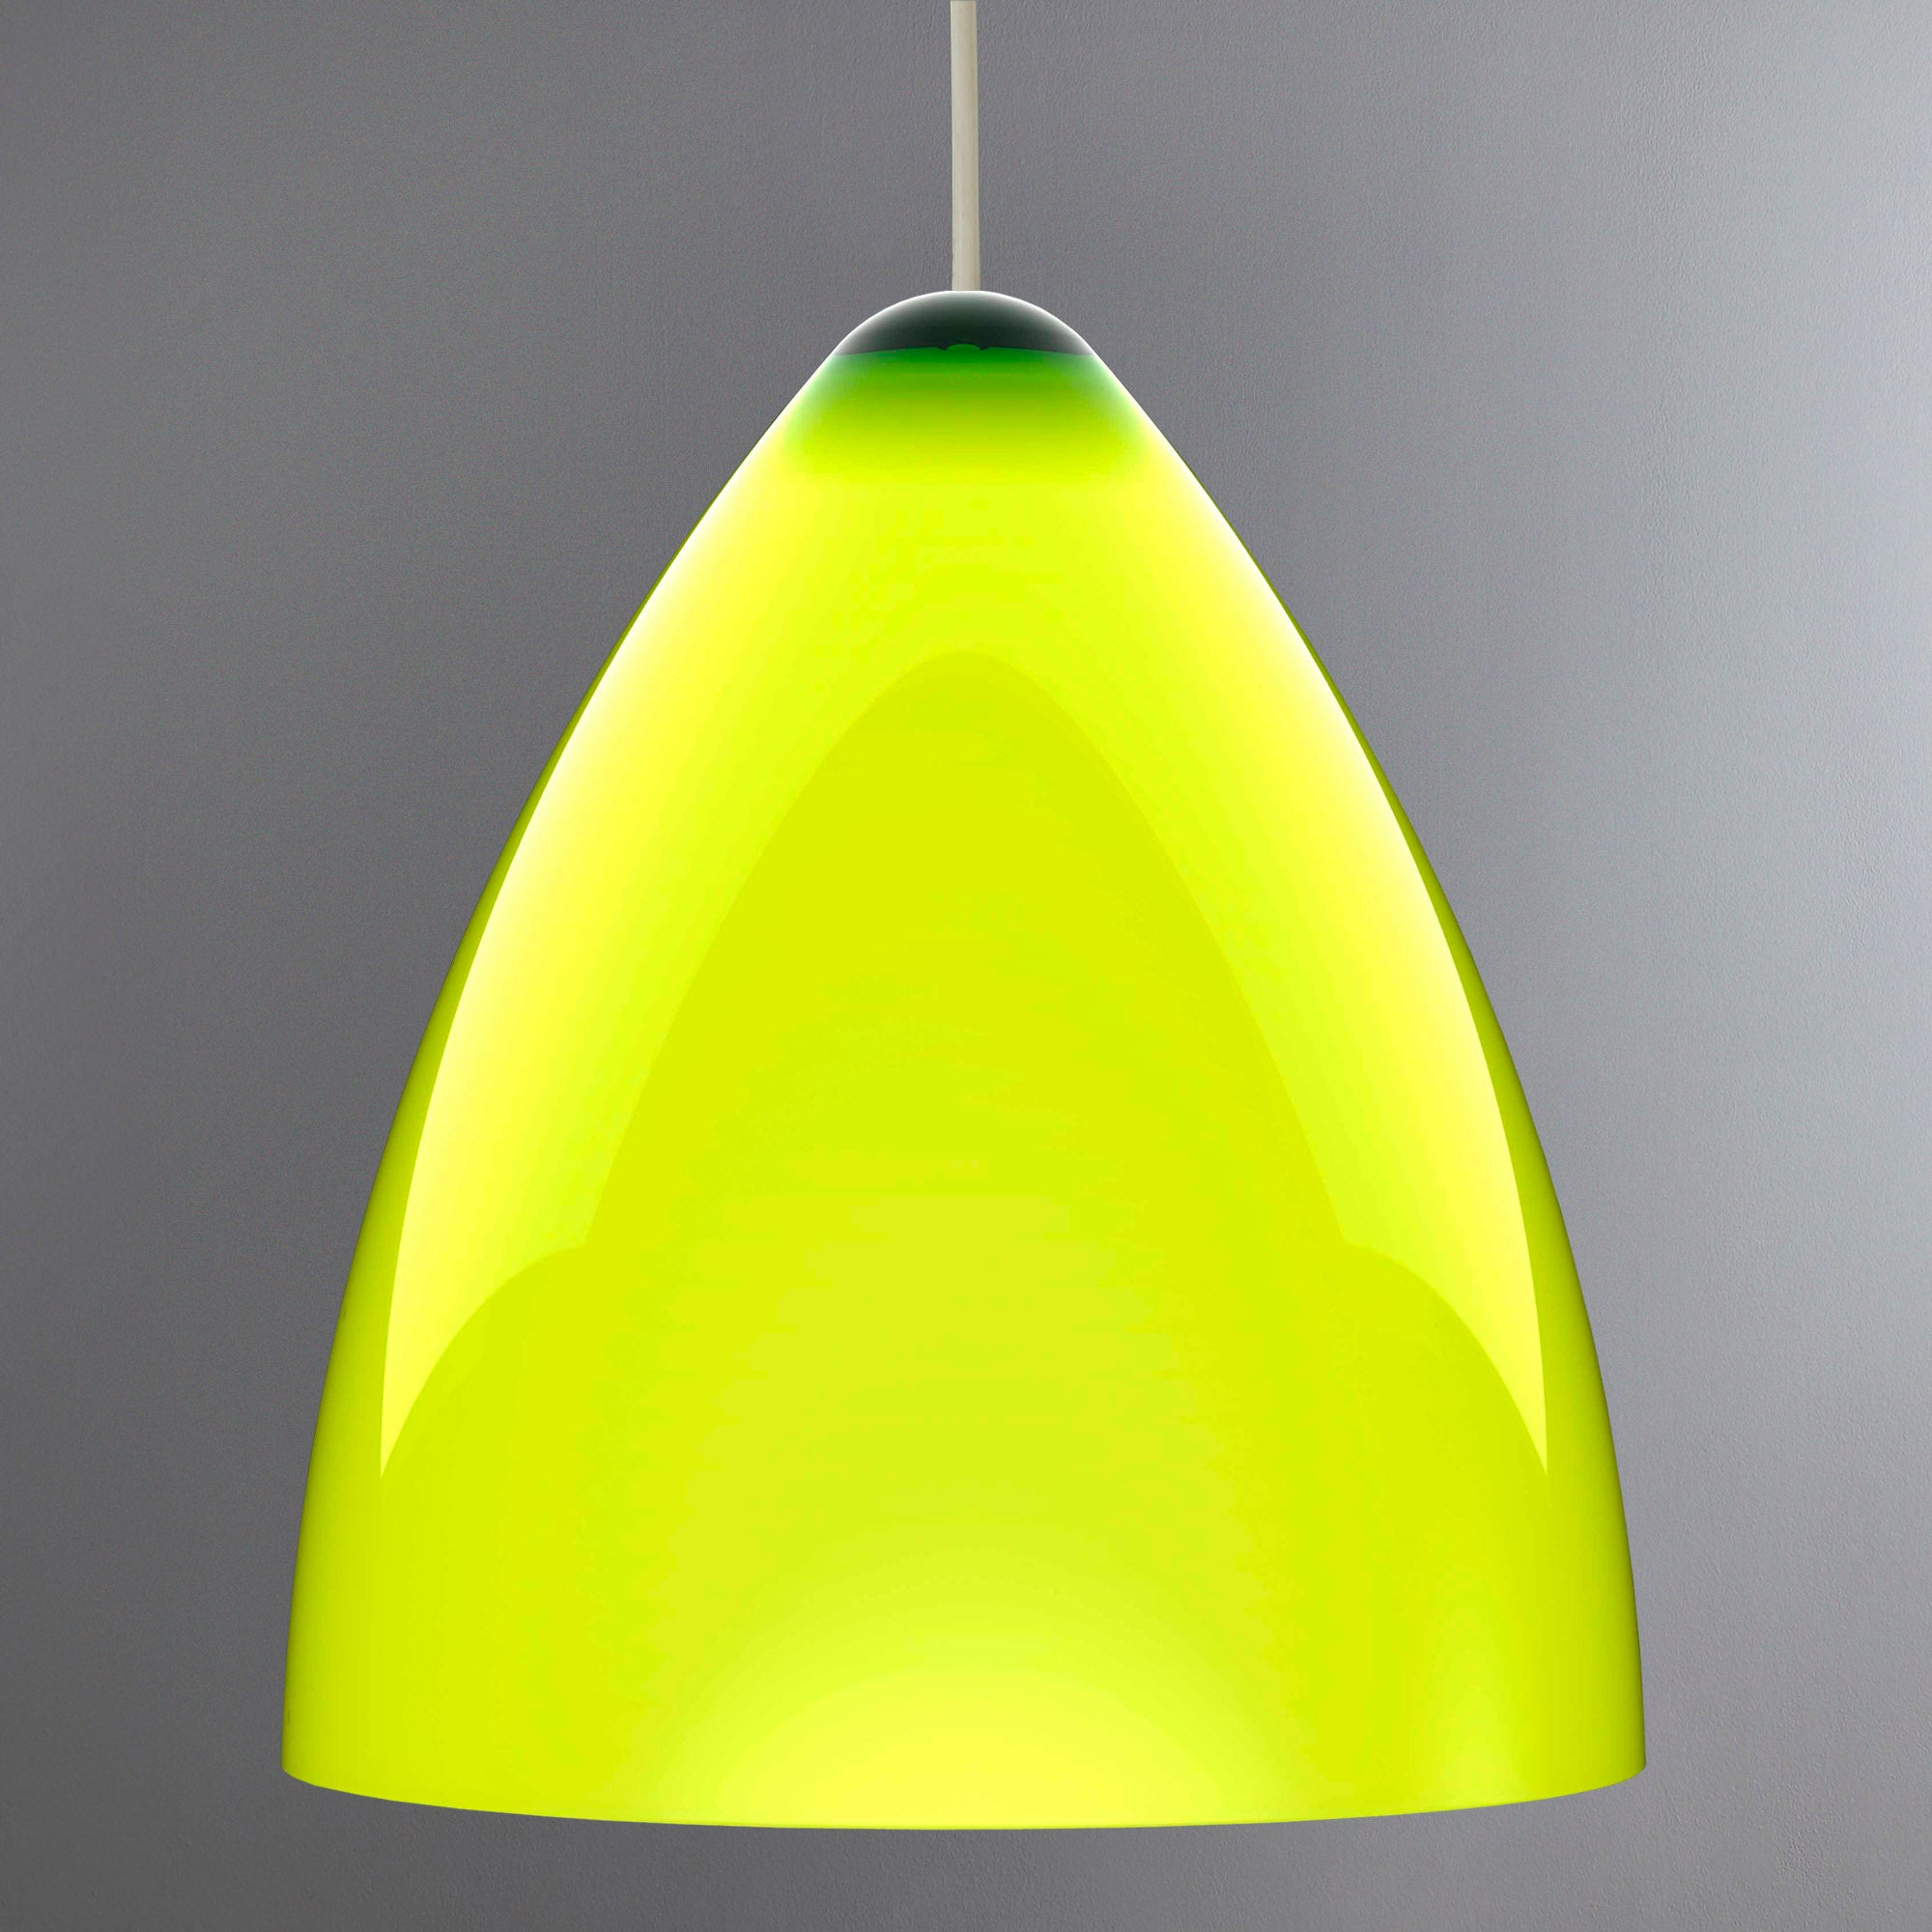 Photo of Funk 27 lime light shade lime -green-